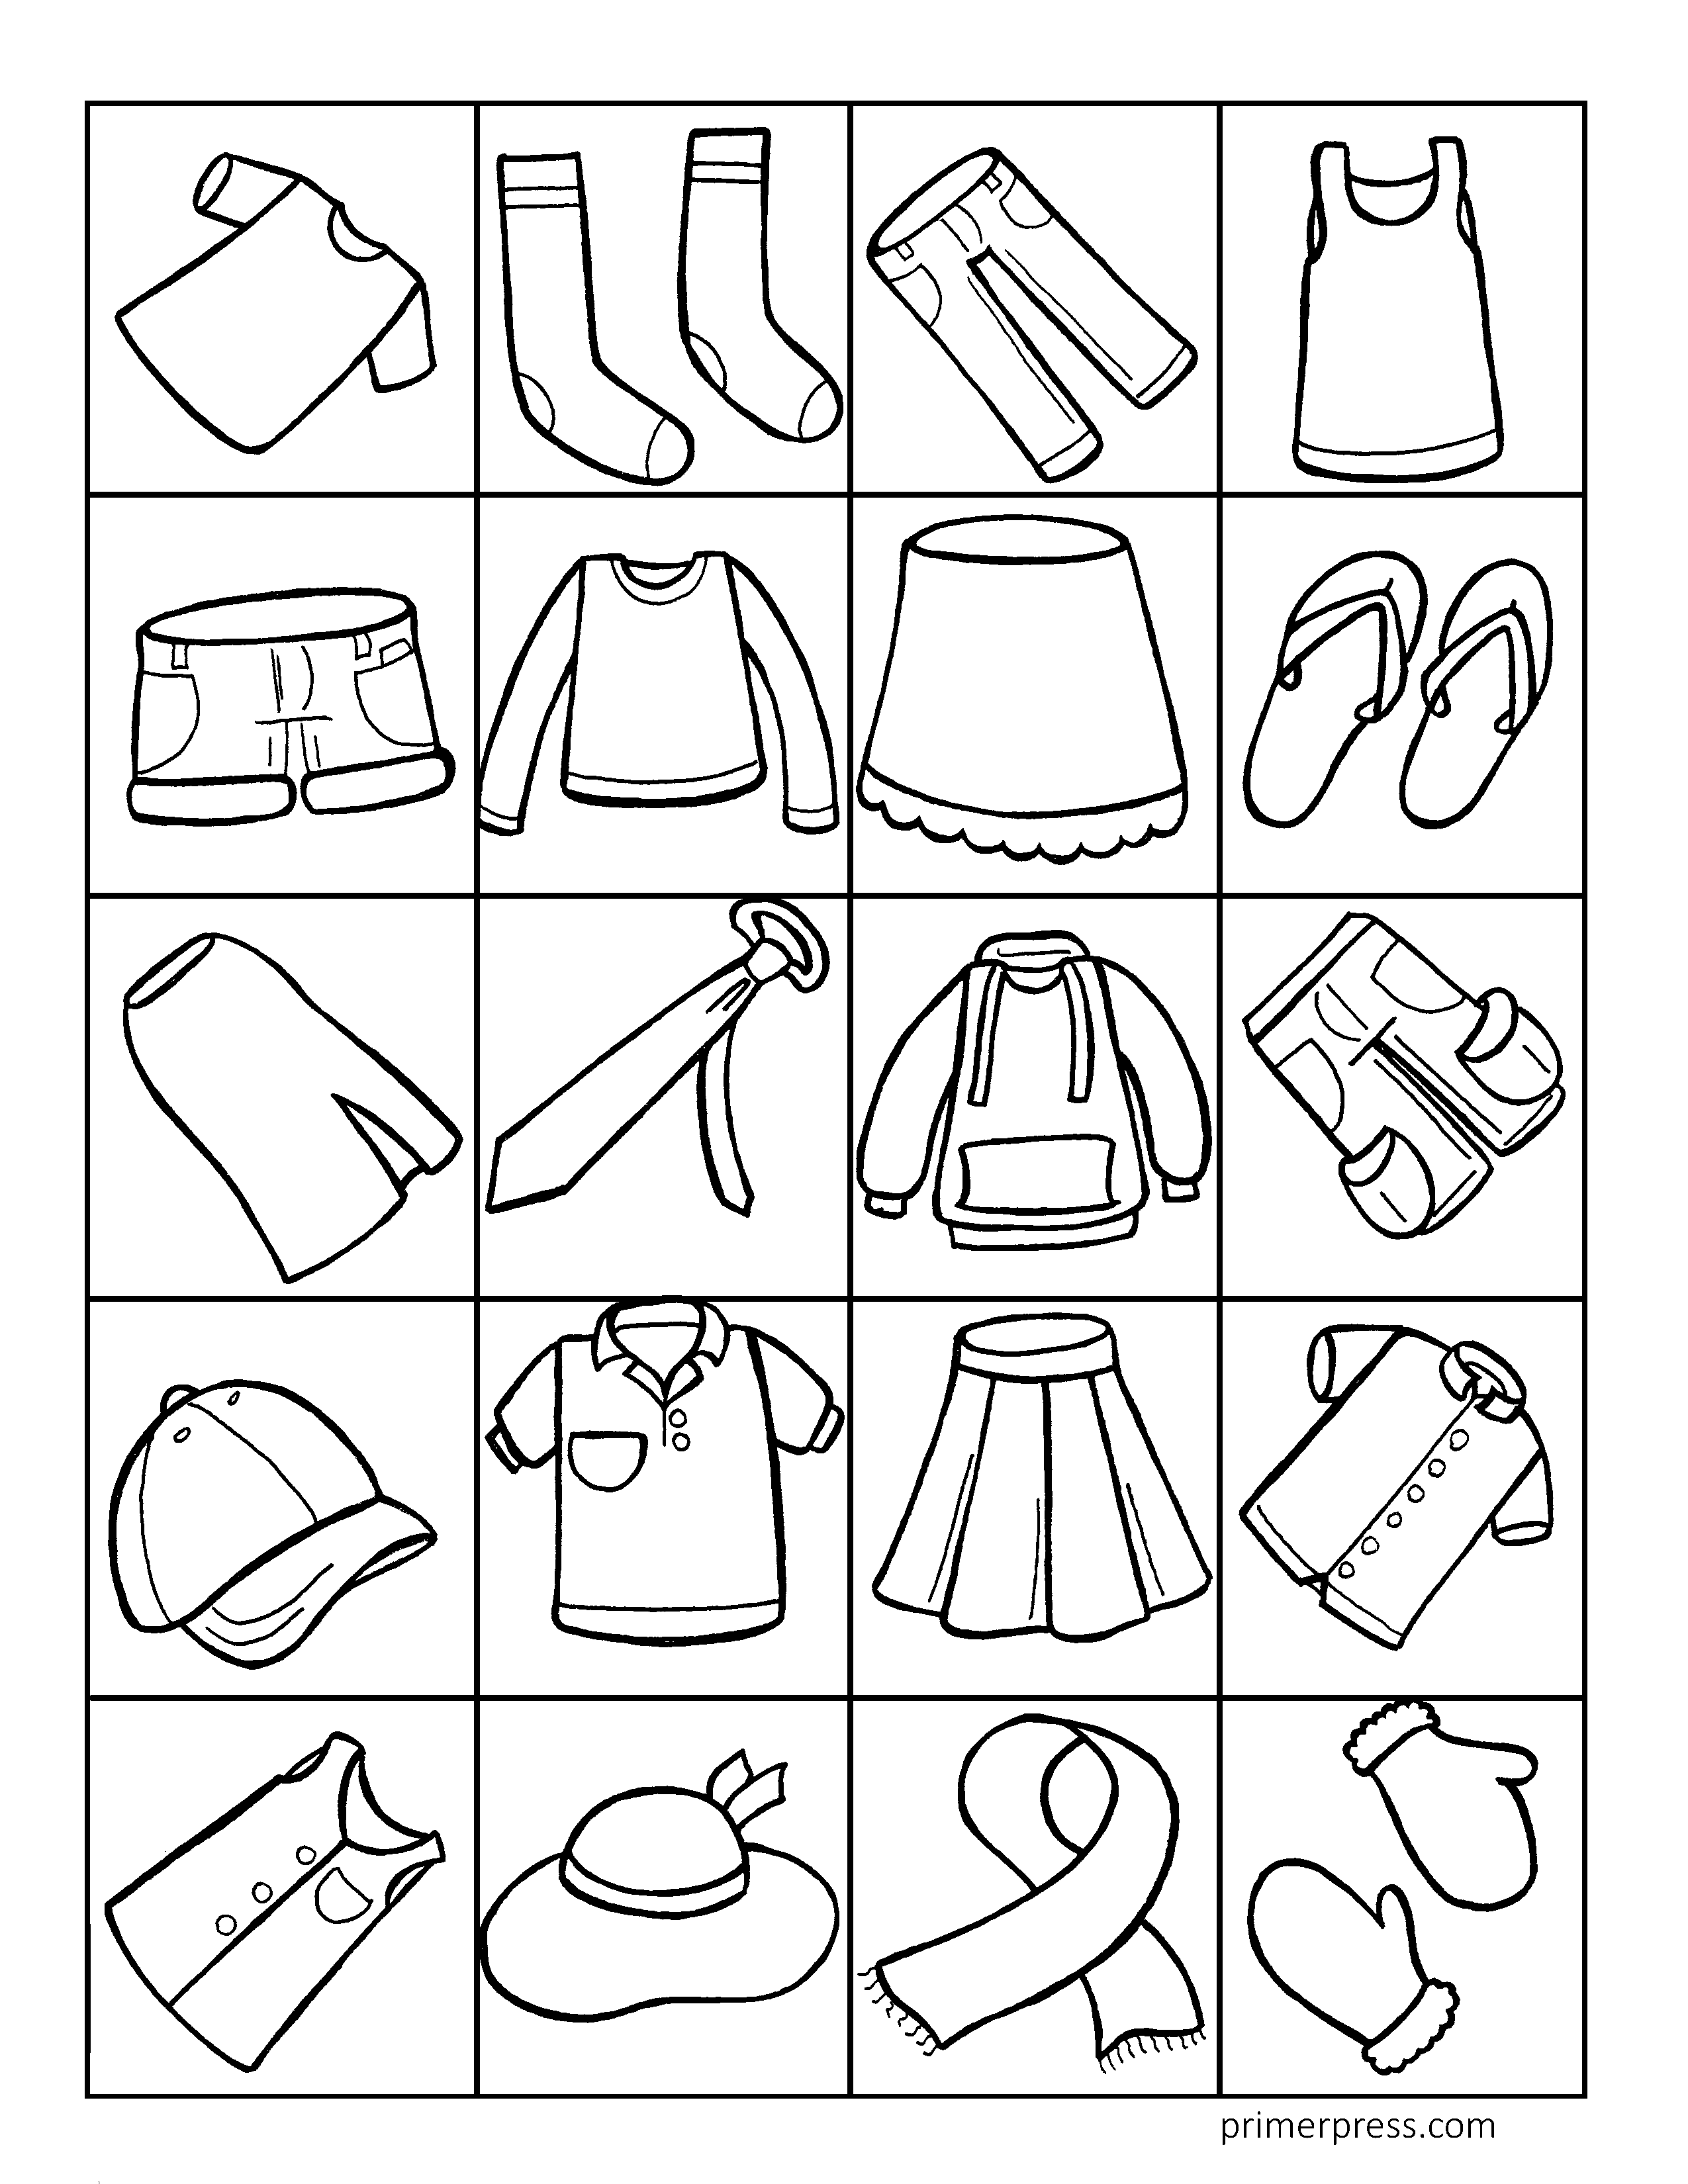 Baby Clothes Coloring Pages With Summer Coloring Pages Coloring Sheets For Kids Coloring For Kids